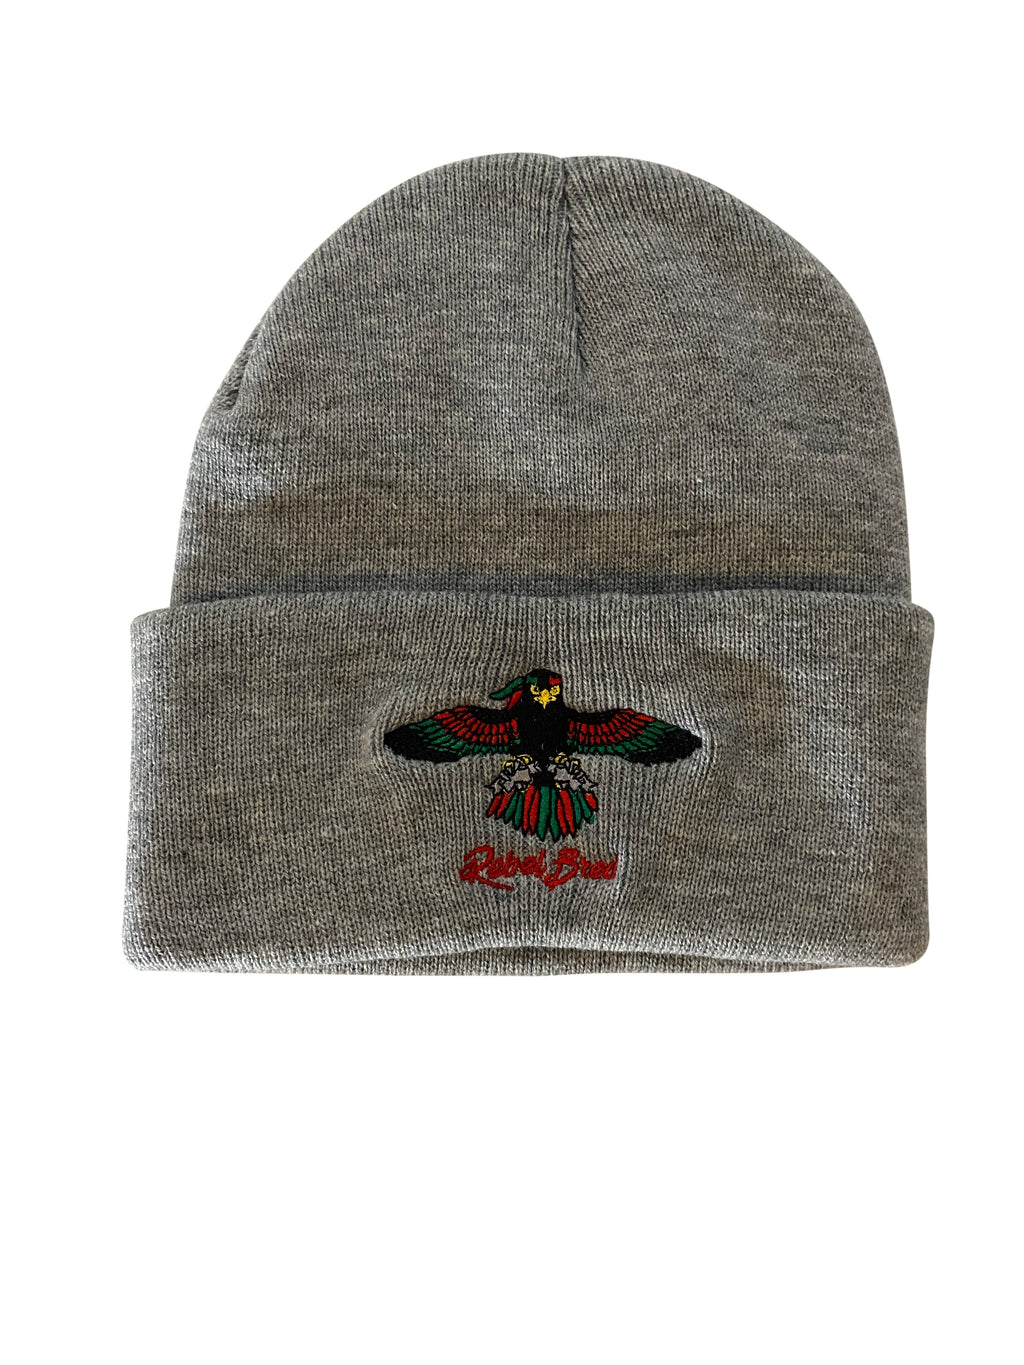 Rebel Eagle Winter Hat